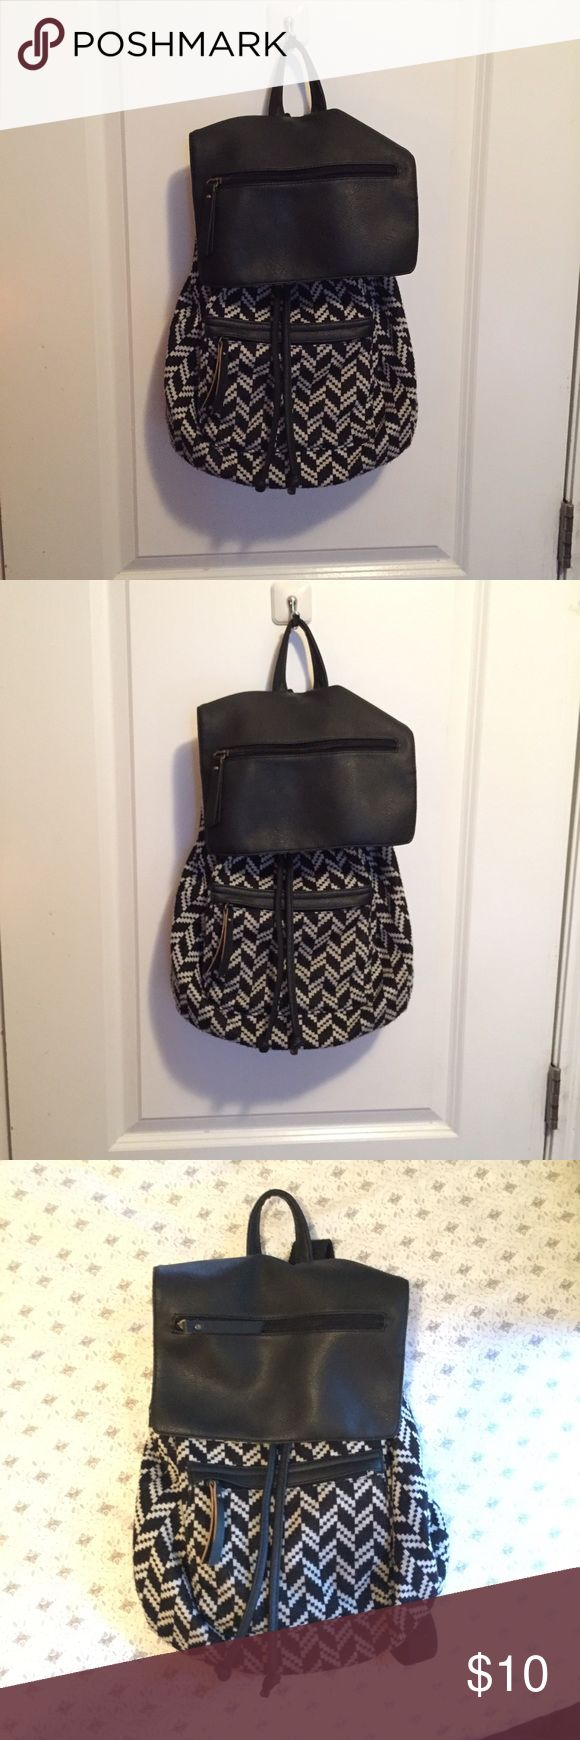 Madden Girl Festival Book Bag Madden Girl Festival Book Bag Has many pockets for all your things and a drawstring closure So cute for carrying small things with you comfortably and in style  Wore this for Lollapalooza last year ✌🏽✌🏽✌🏽 Front pocket, pocket on the front flap, small zipper pocket in main compartment  Cute tribal black and gray pattern ***flaw: the flap closes on with a magnetic snap the bottom portion this is coming loose & separating from the bag (you can still close the…